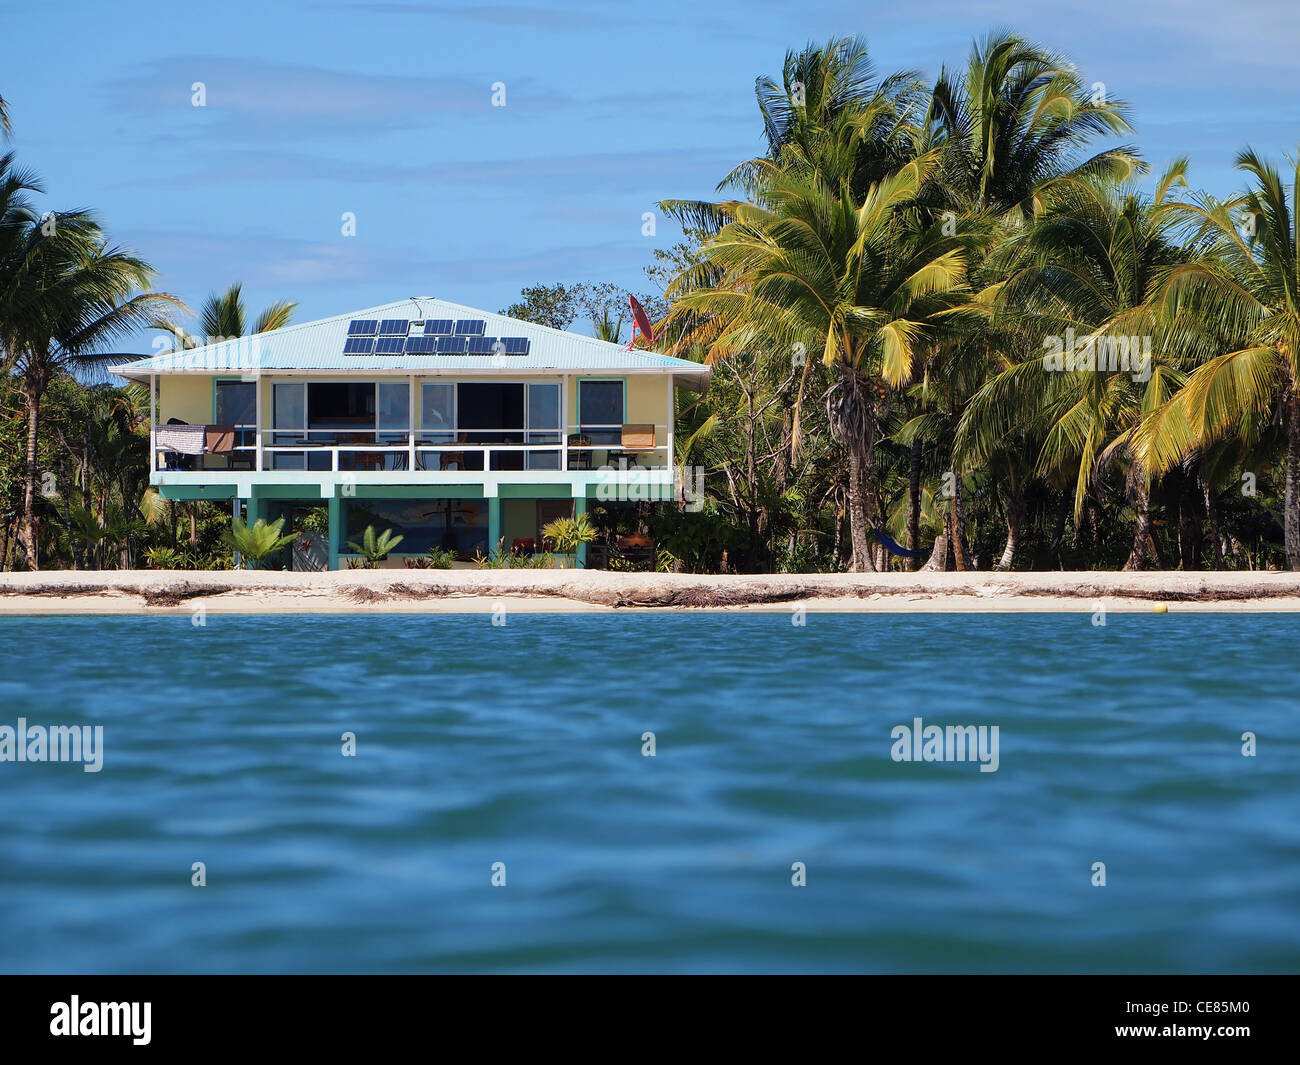 Off-grid beach house with coconuts trees, Caribbean sea, Panama, Central America - Stock Image